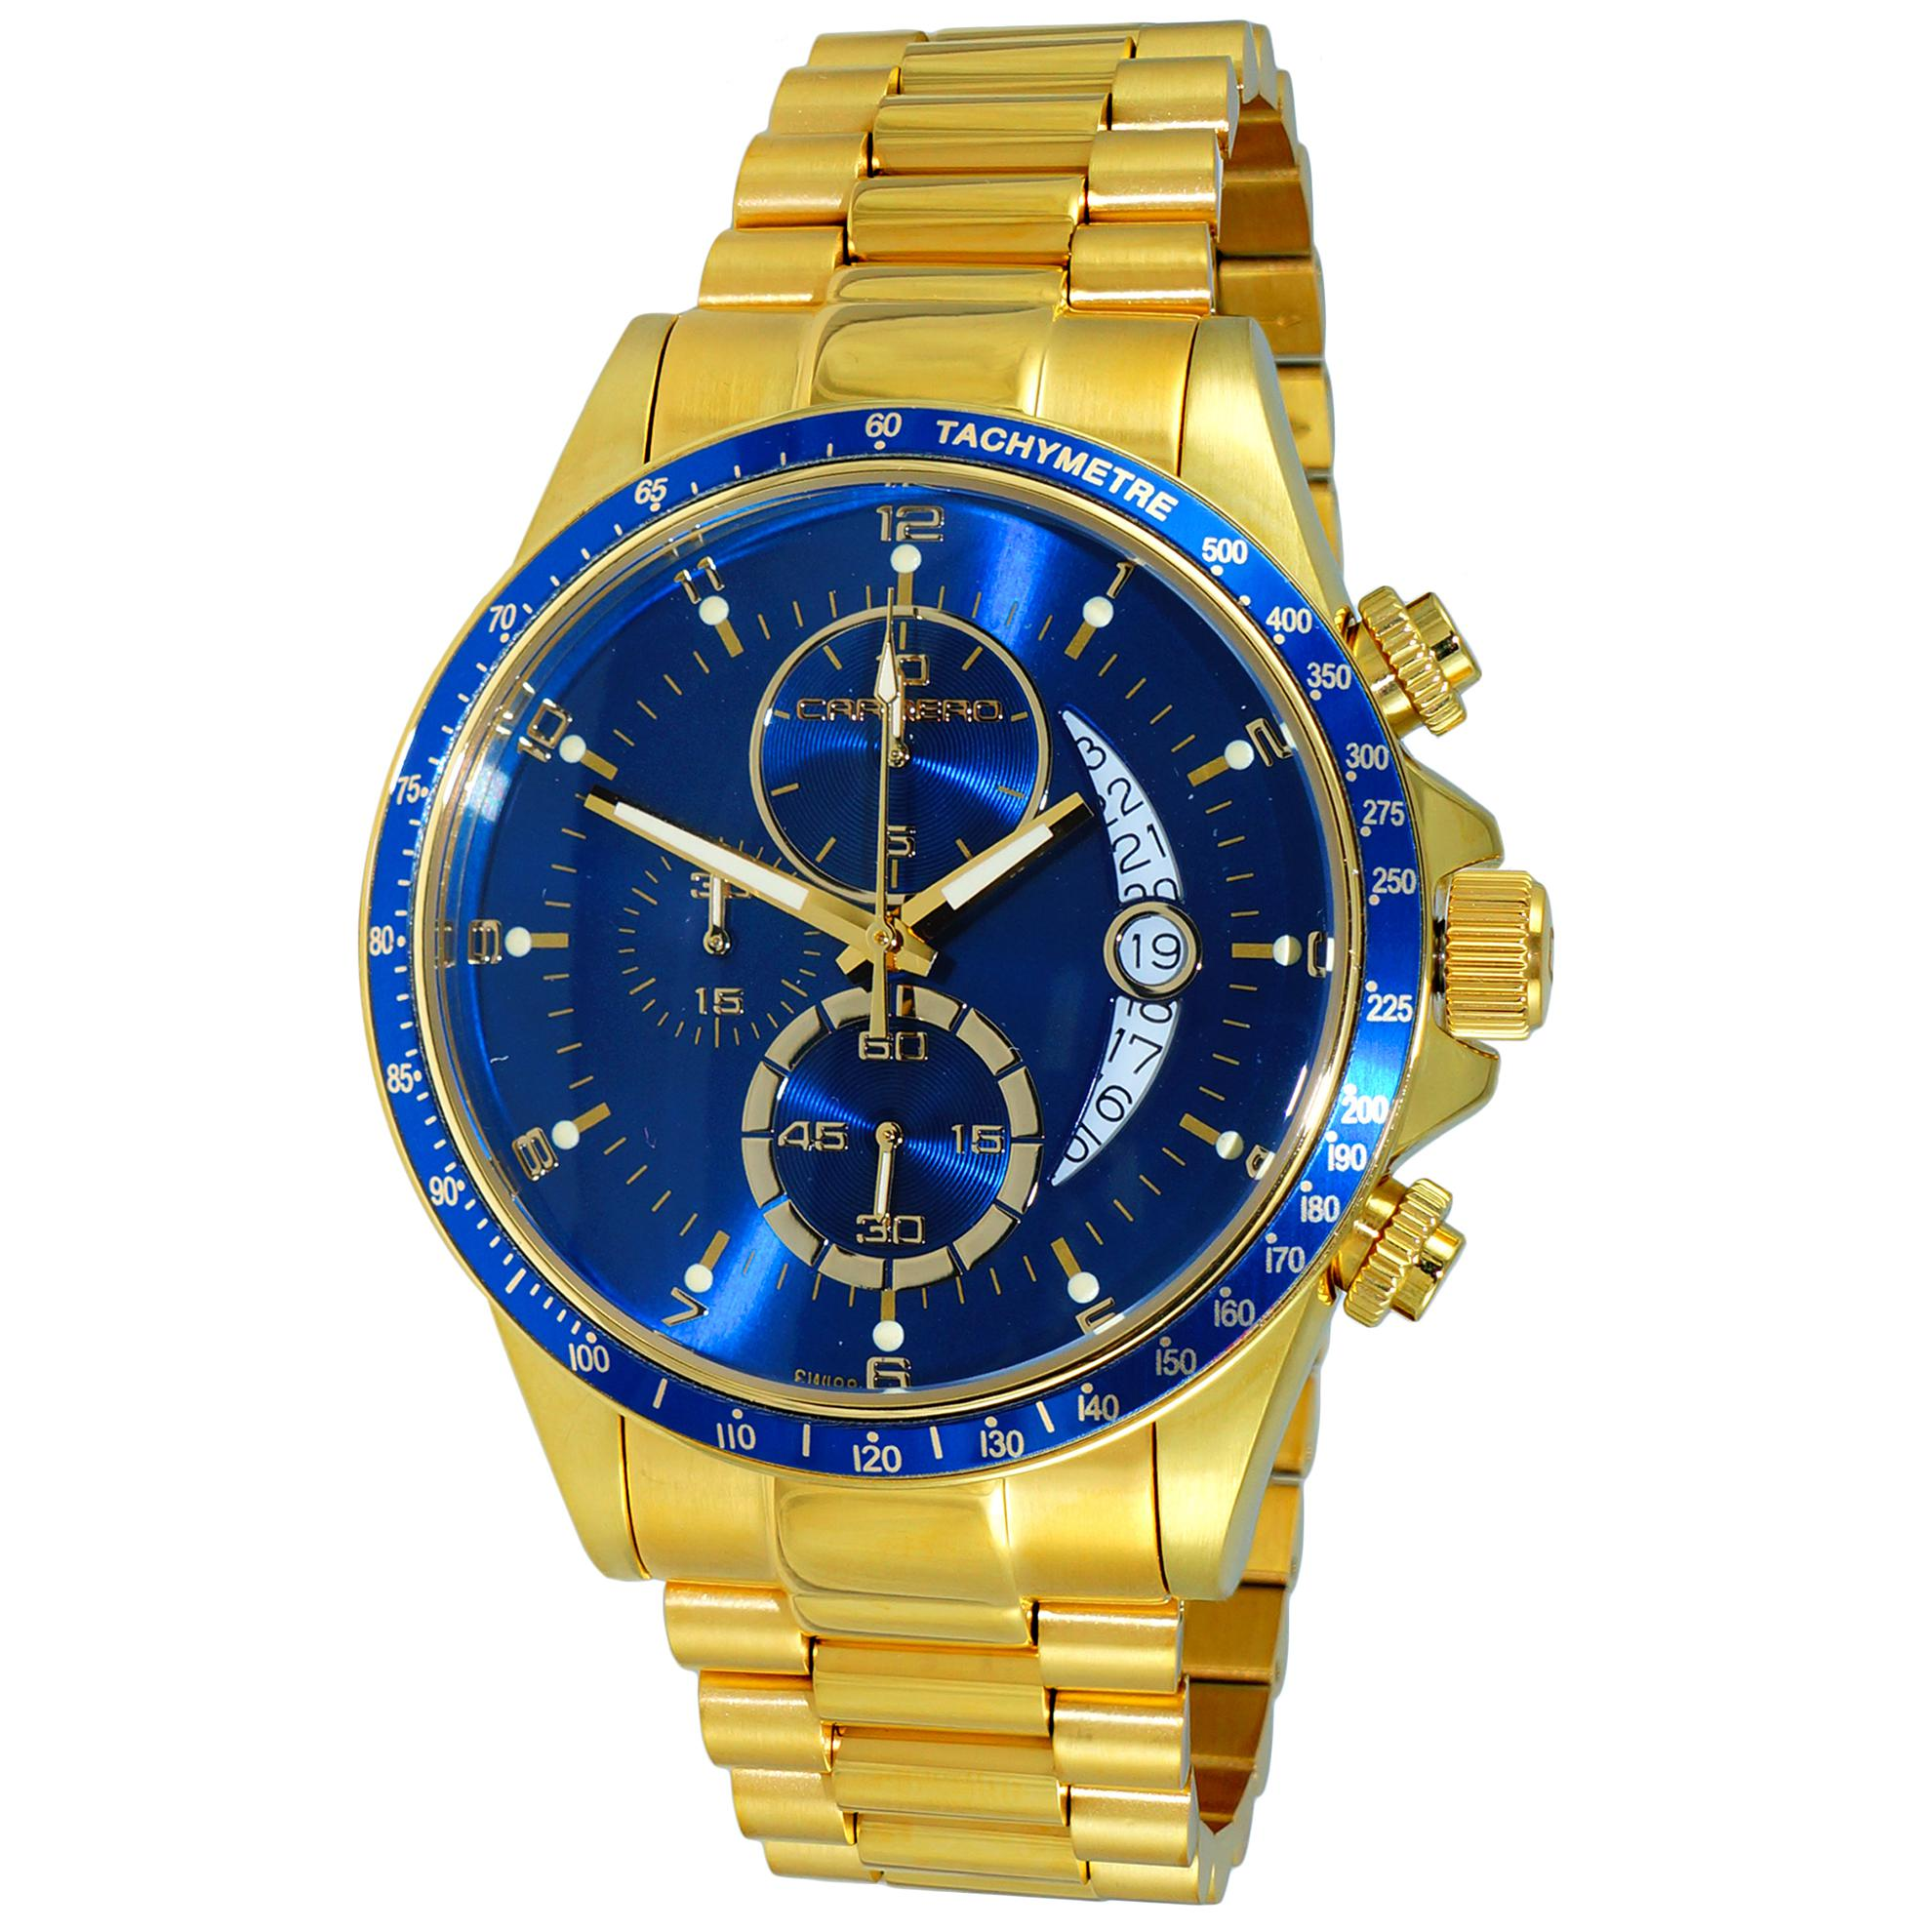 Carrero C1G111BU Carrero Catania R1 Limited Edition Swiss Chronograph All Gold Blue Dial